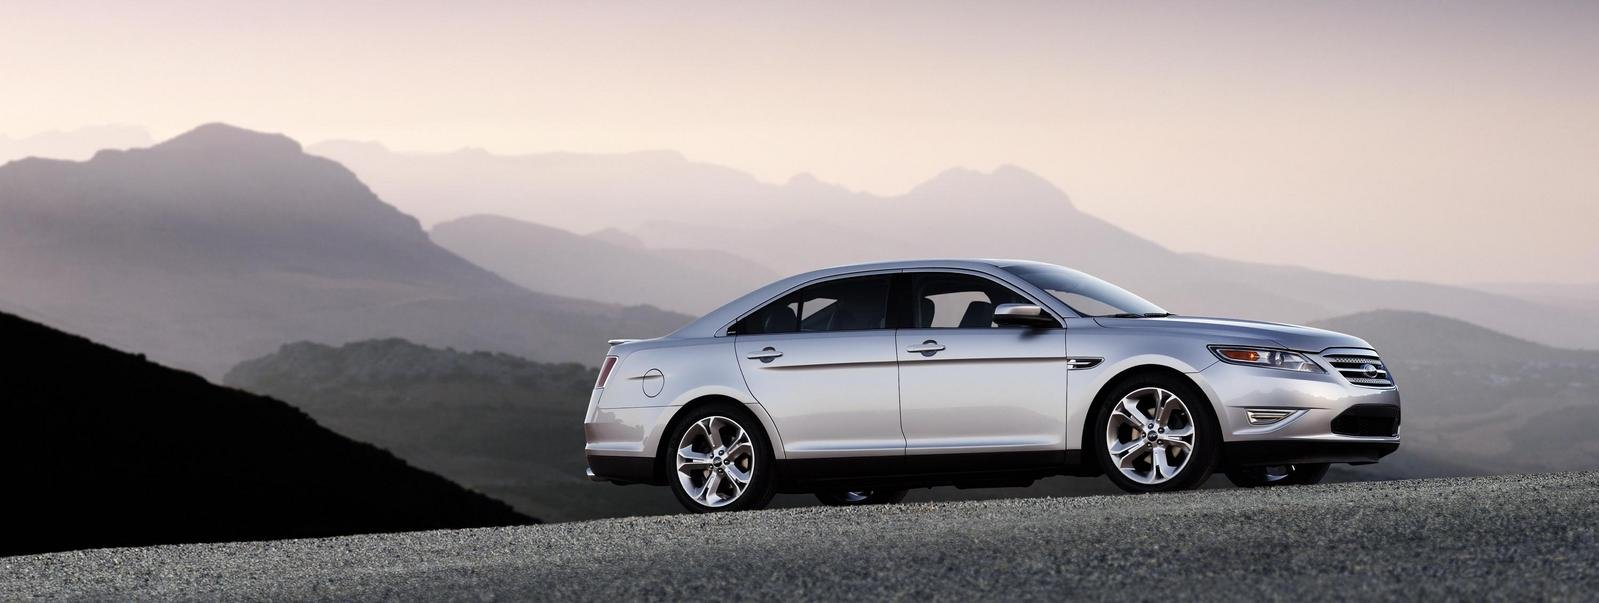 2010 ford taurus sho picture 285171 car review top speed. Black Bedroom Furniture Sets. Home Design Ideas